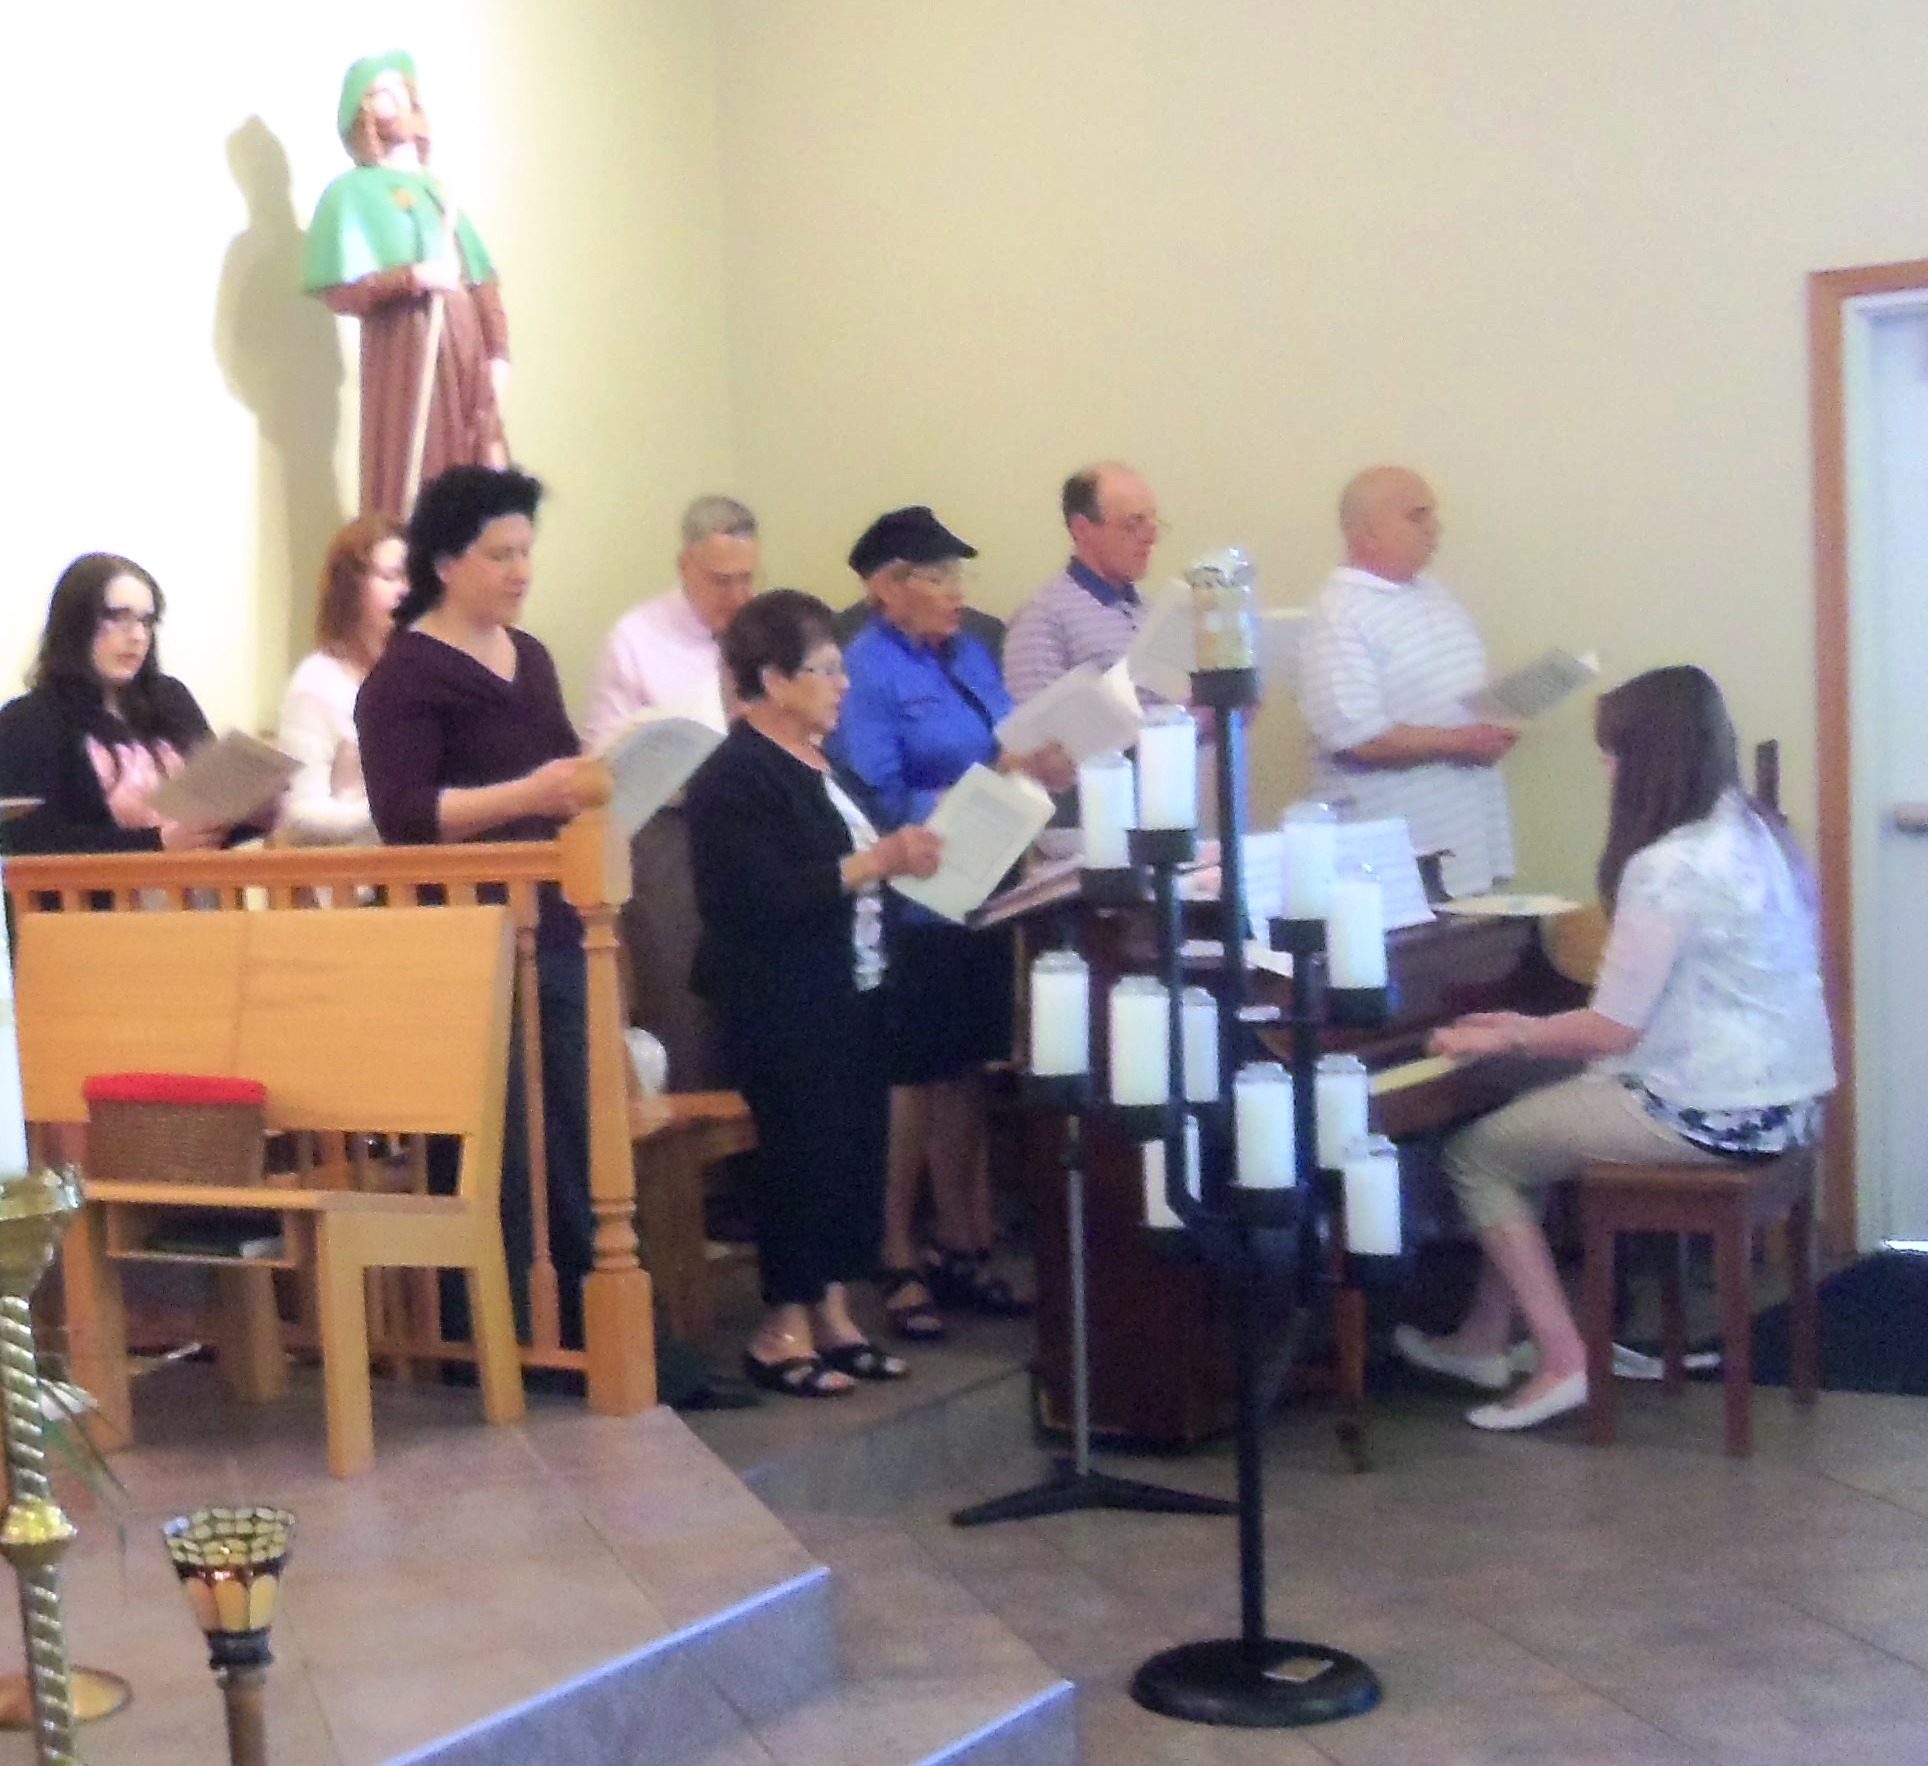 During Communion, the choir sings In Bread that Is Broken, from the octavo.